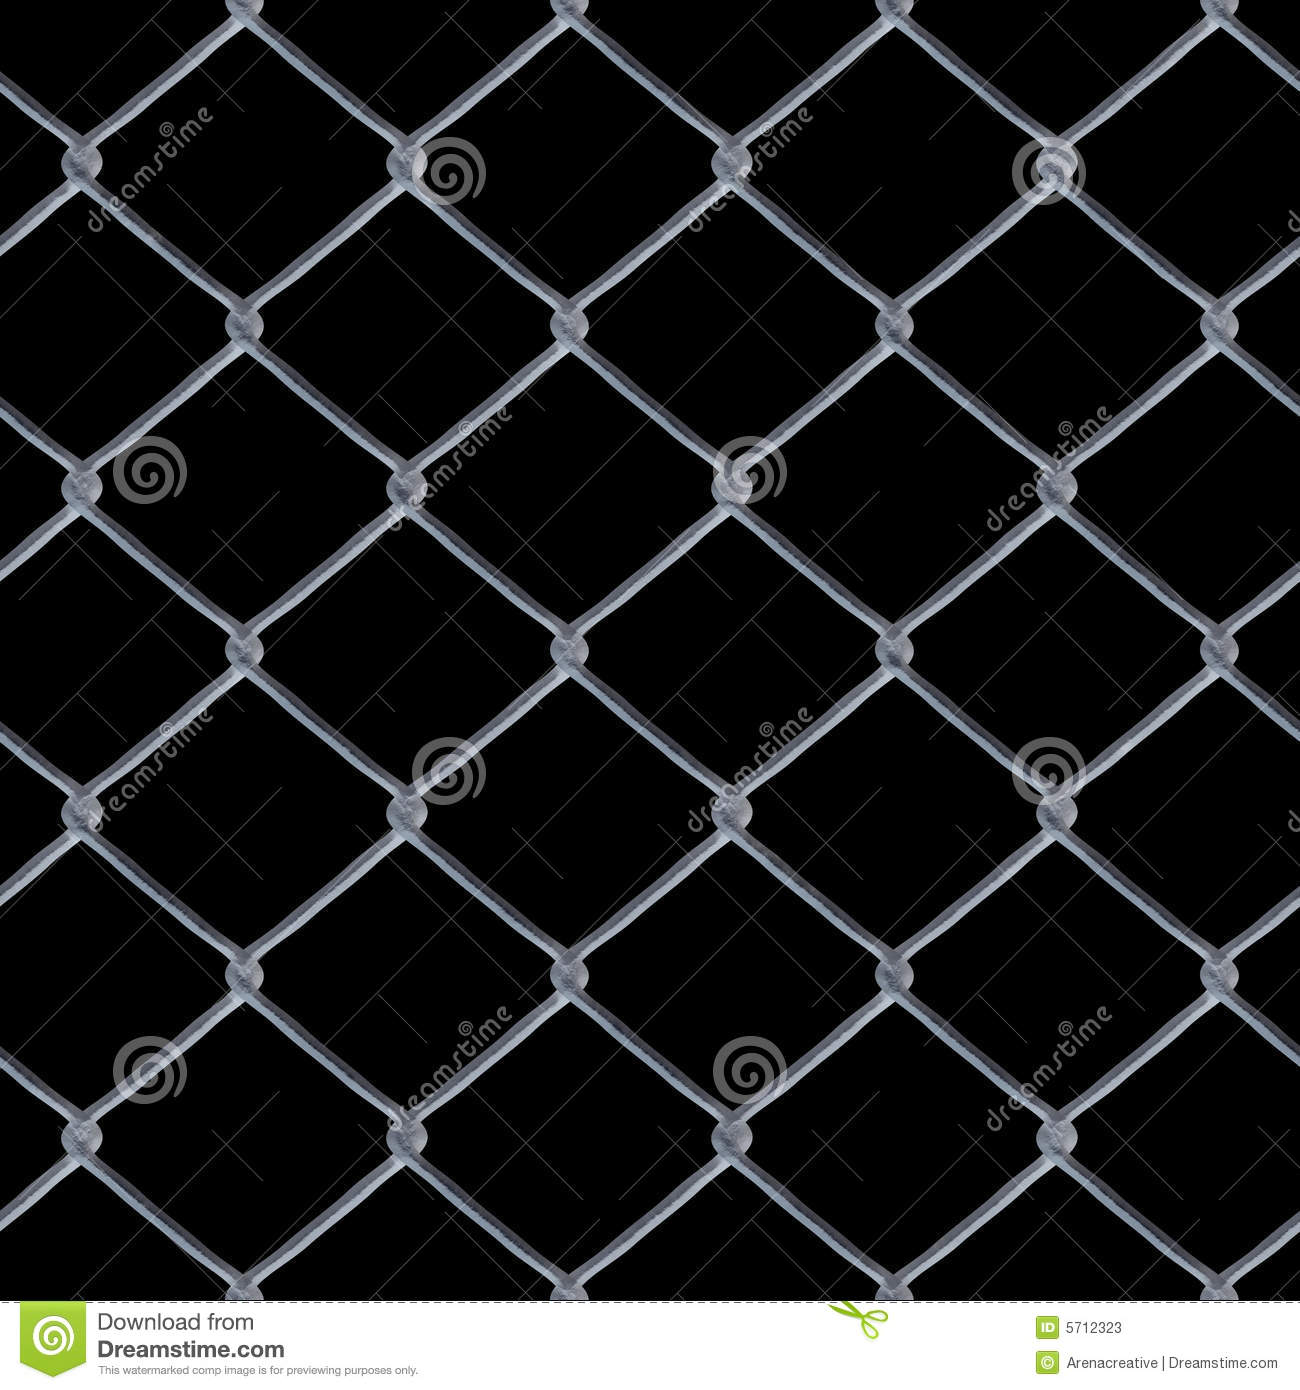 Chain link fence stock photos image 5712323 for Chain link fence planner